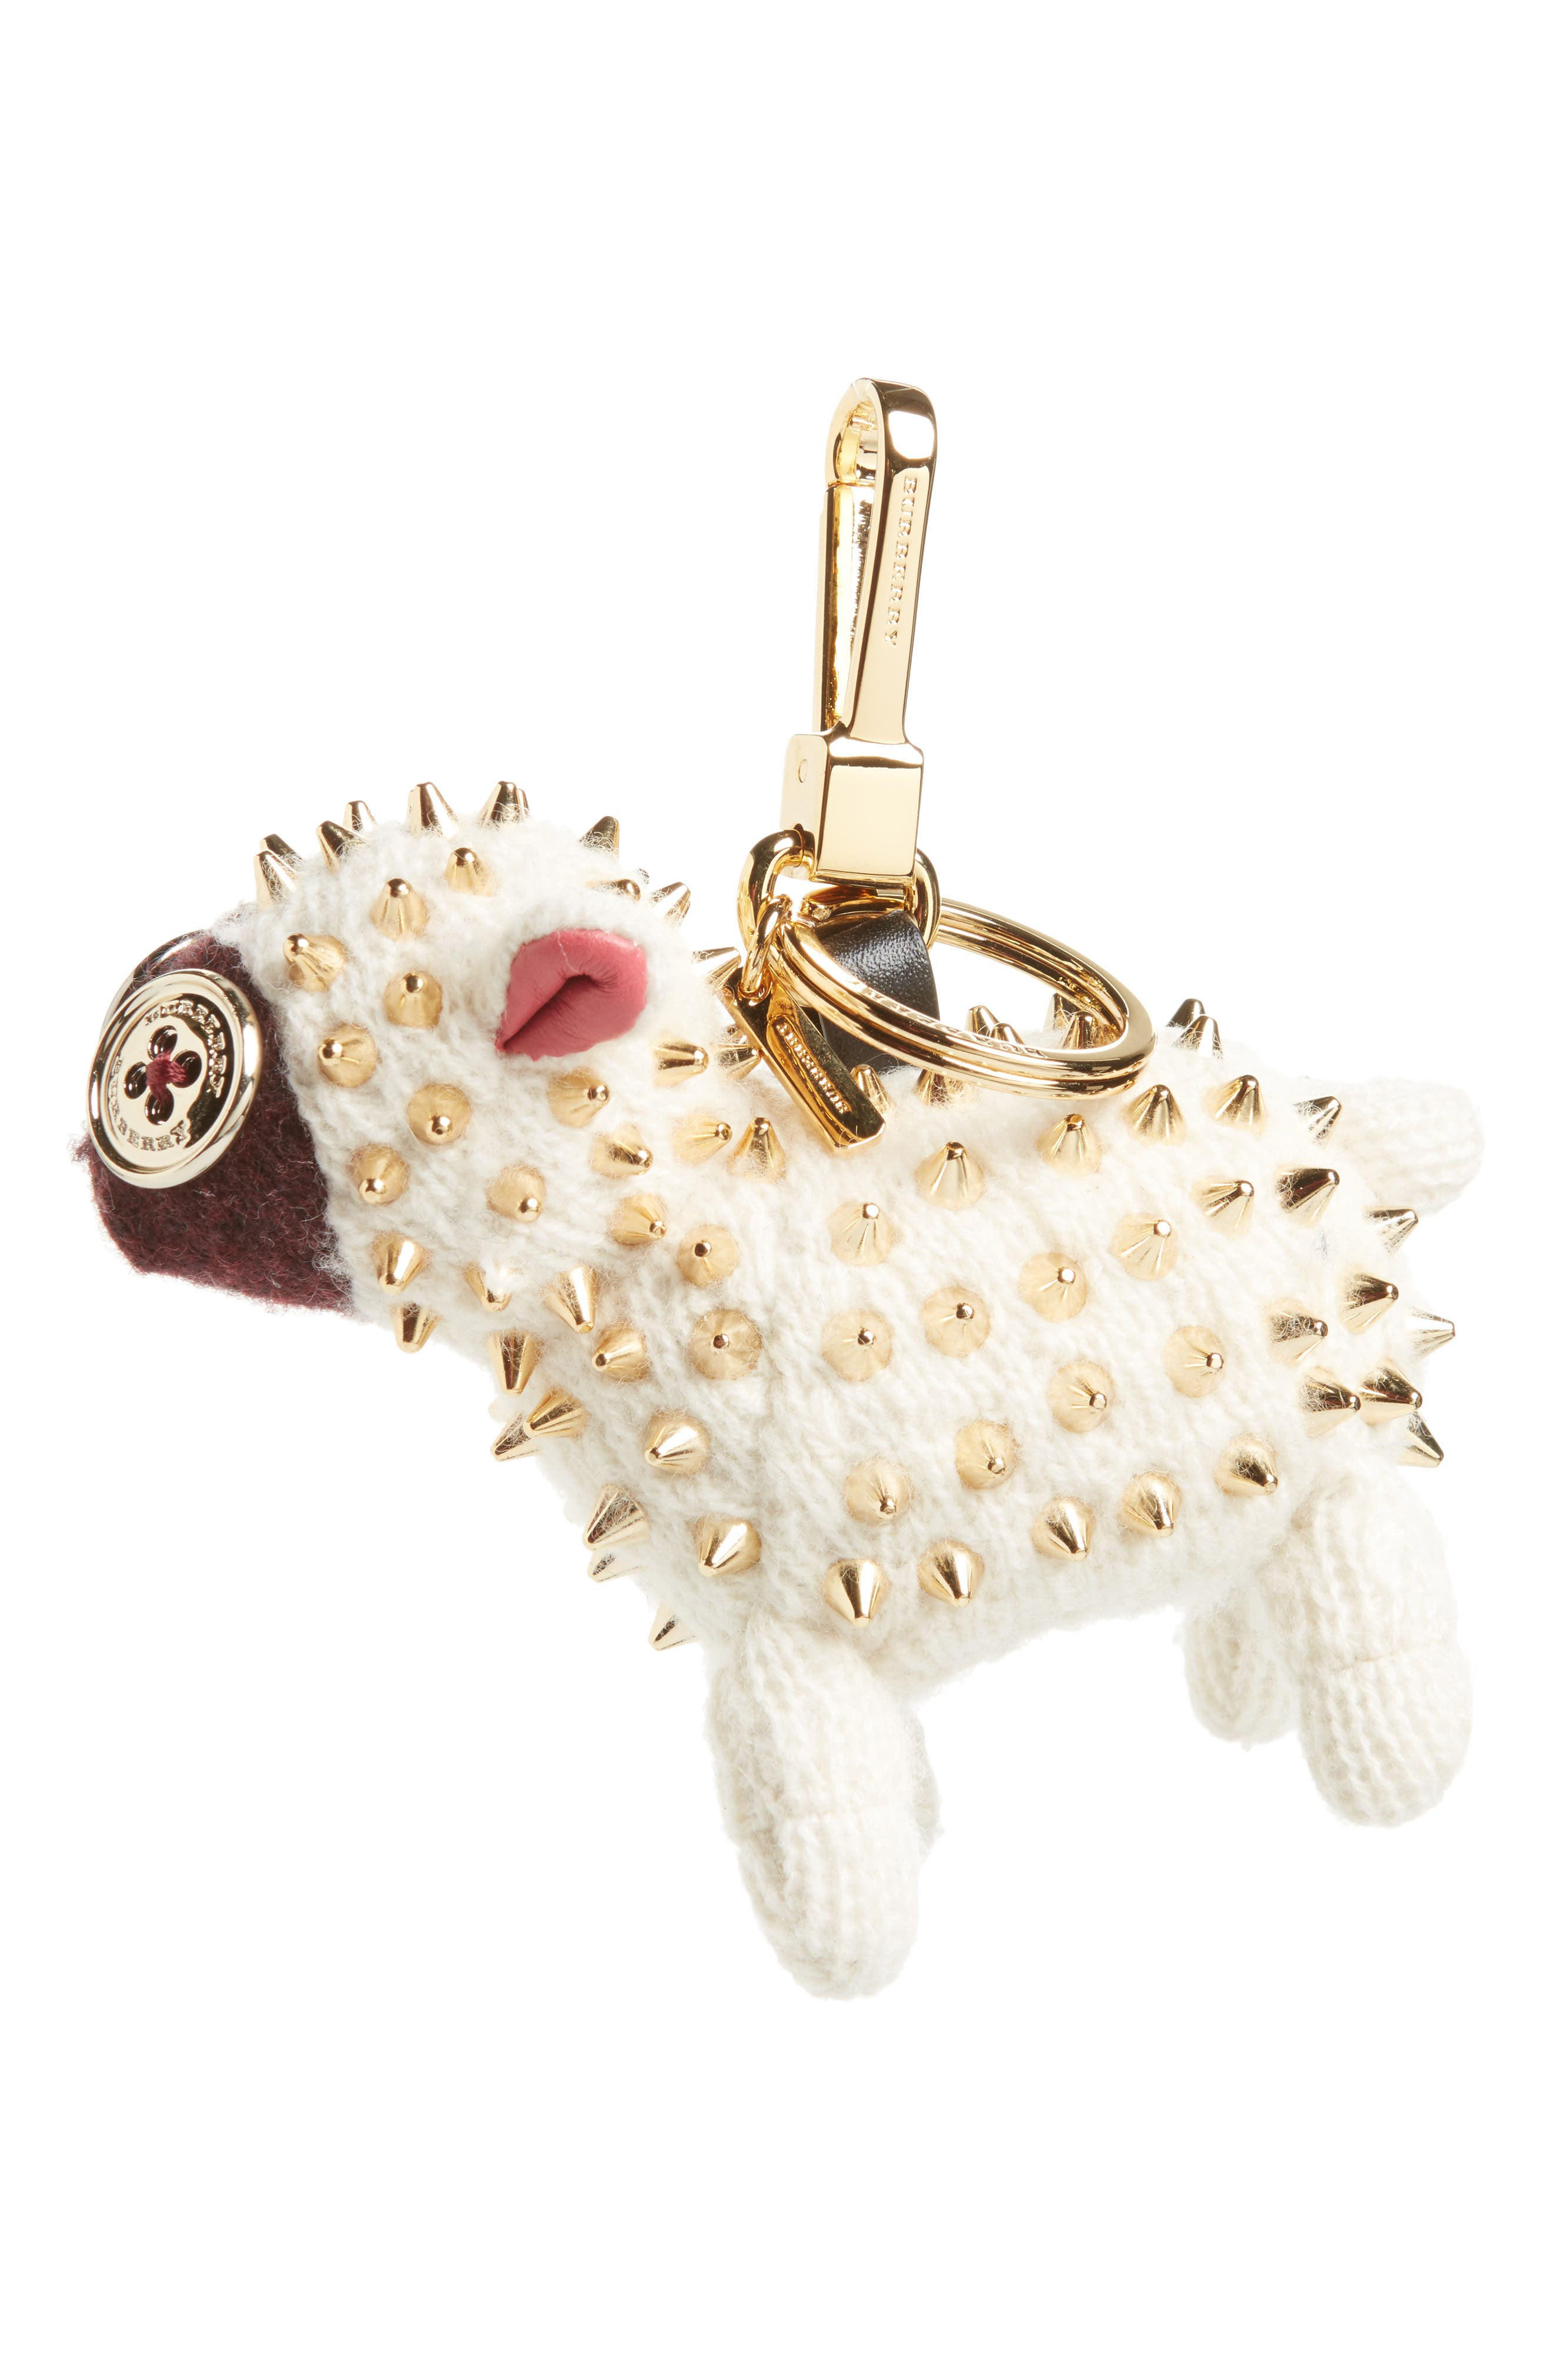 Wendy the Sheep Studded Cashmere Bag Charm,                             Main thumbnail 1, color,                             100